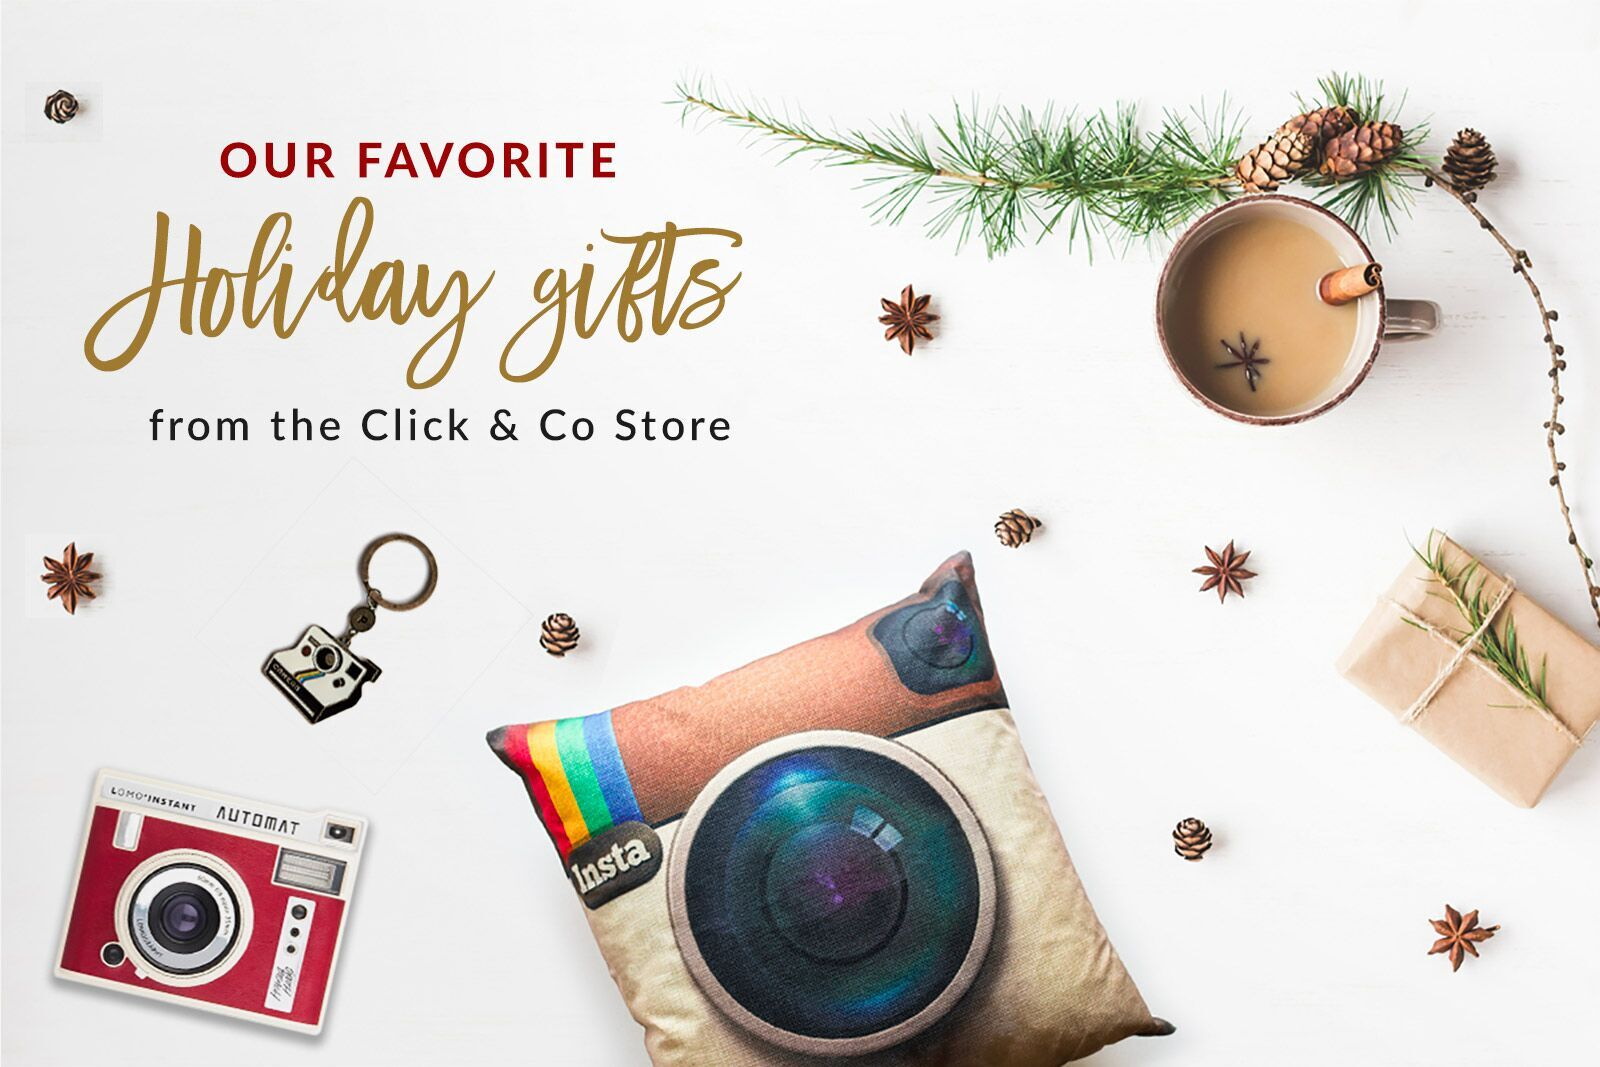 Our favorite Holiday gifts from the Click & Co Store